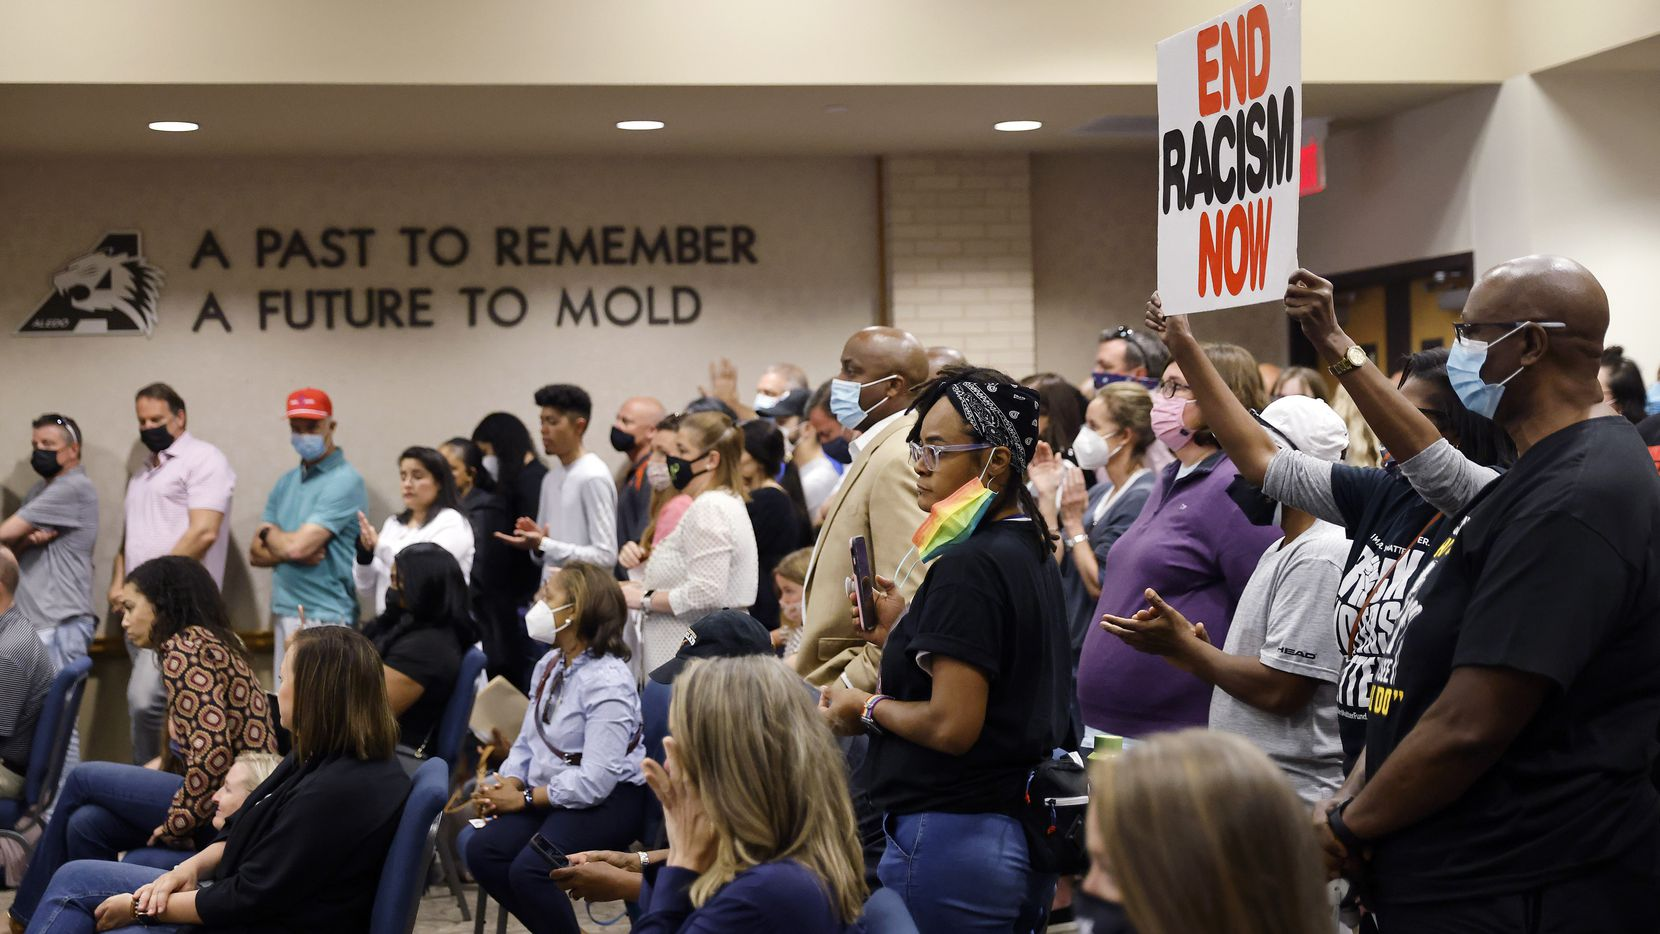 """Parents and supporters gathered in the Aledo ISD school board chamber to voice their concerns about a racist Snapchat group with multiple names, including """"Slave Trade"""" and another that included a racial slur, April 19, 2021. Mioshi Johnson's son, Christopher Johnson, spoke to the school board himself after being targeted in the social media post by students."""